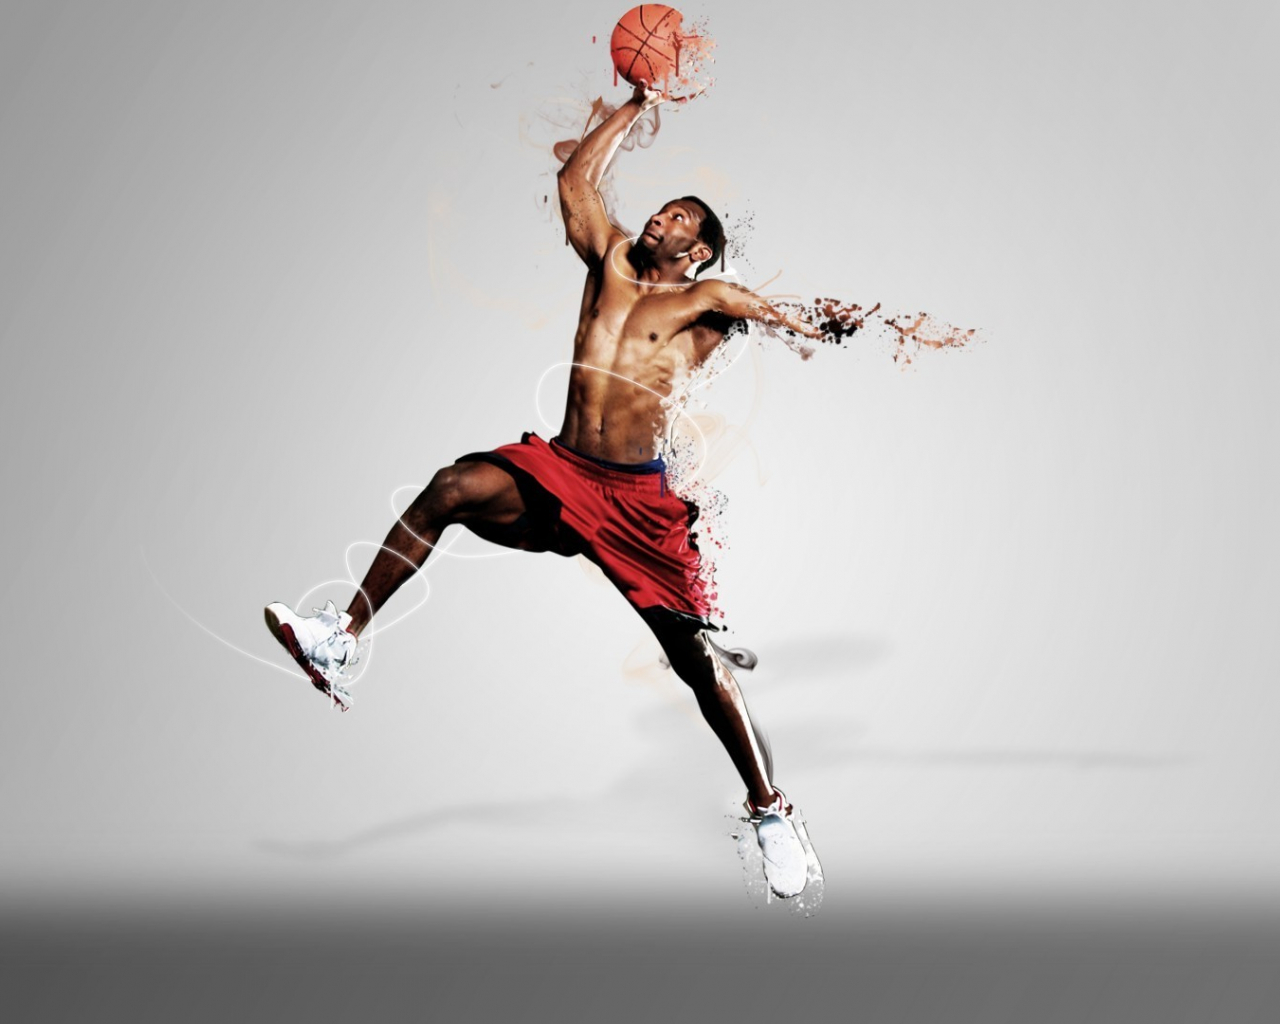 Free Download Basketball Player Hd Wallpaper 1920x1080 1920x1080 For Your Desktop Mobile Tablet Explore 49 Wallpaper Basketball Player Basketball Hd Wallpaper Nba Wallpaper Desktop Basketball Wallpapers Free Basketball Wallpapers Screensavers